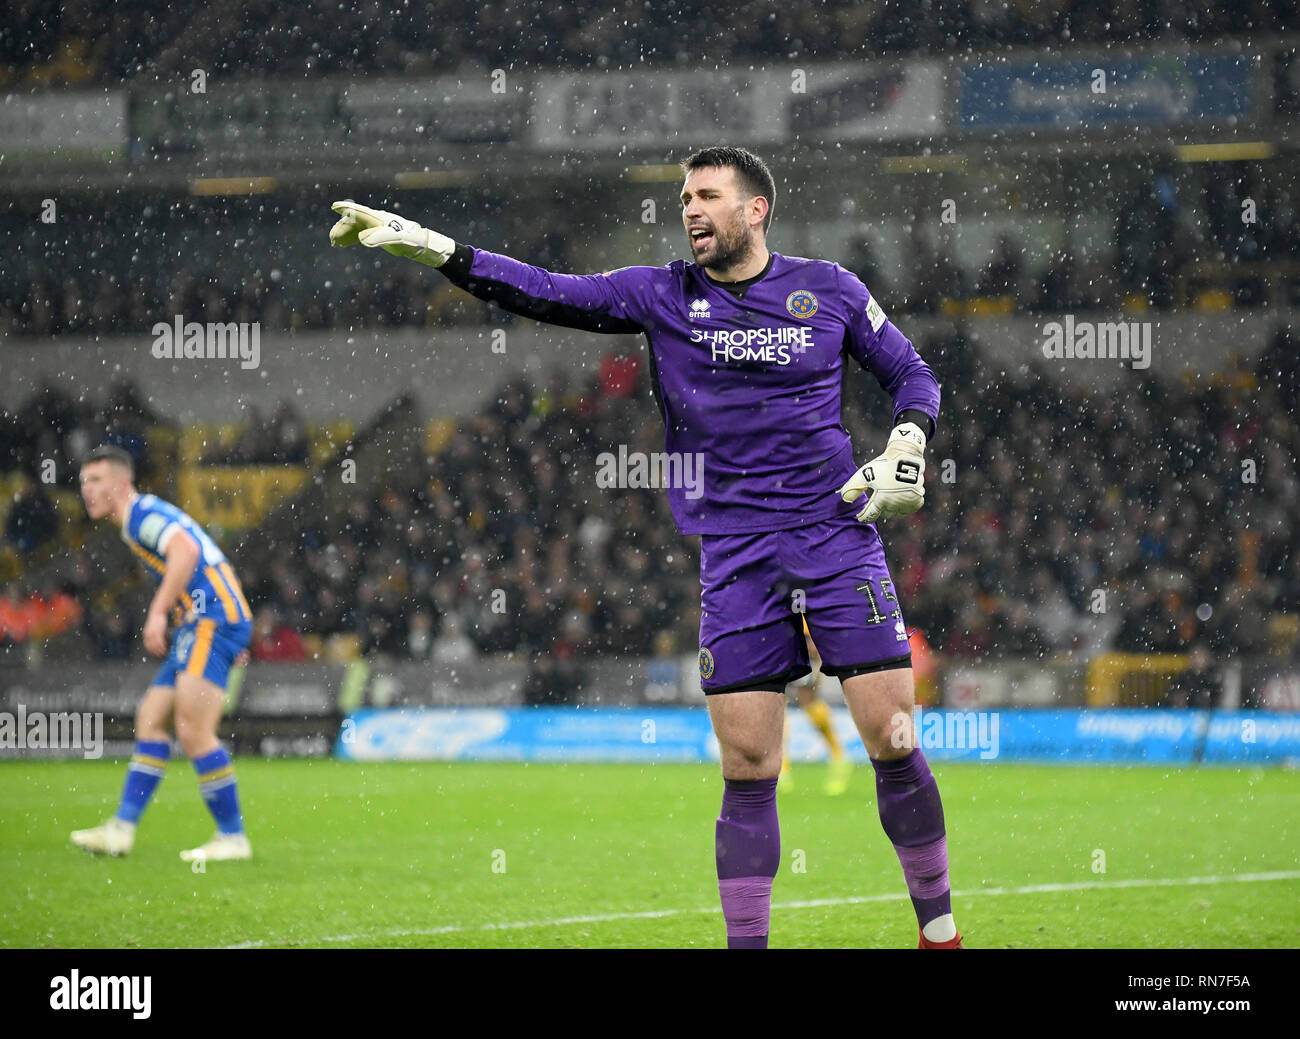 Footballer football goalkeeper Steve Arnold of Shrewsbury Town FC - Stock Image